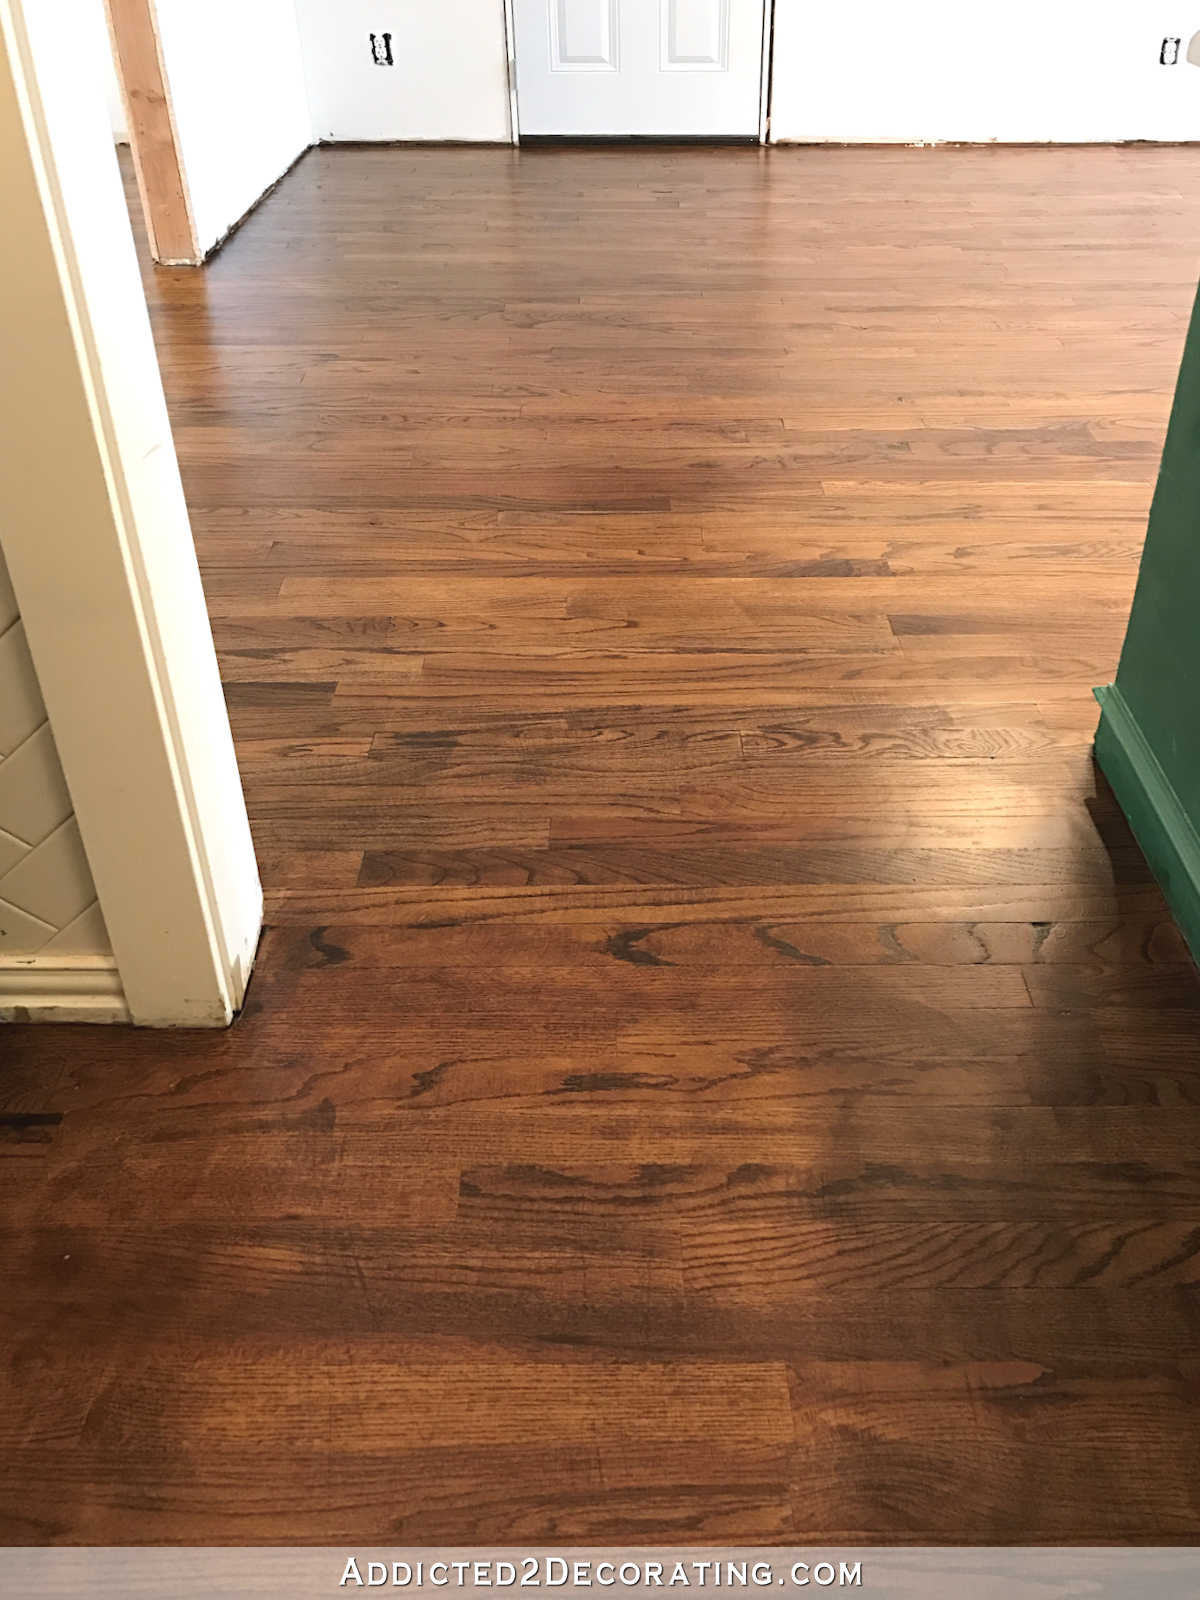 refinishing hardwood floors yourself of diy refinish hardwood floors adventures in staining my red oak within diy refinish hardwood floors refinishing hardwood flooring floors diy ottawa edmonton without